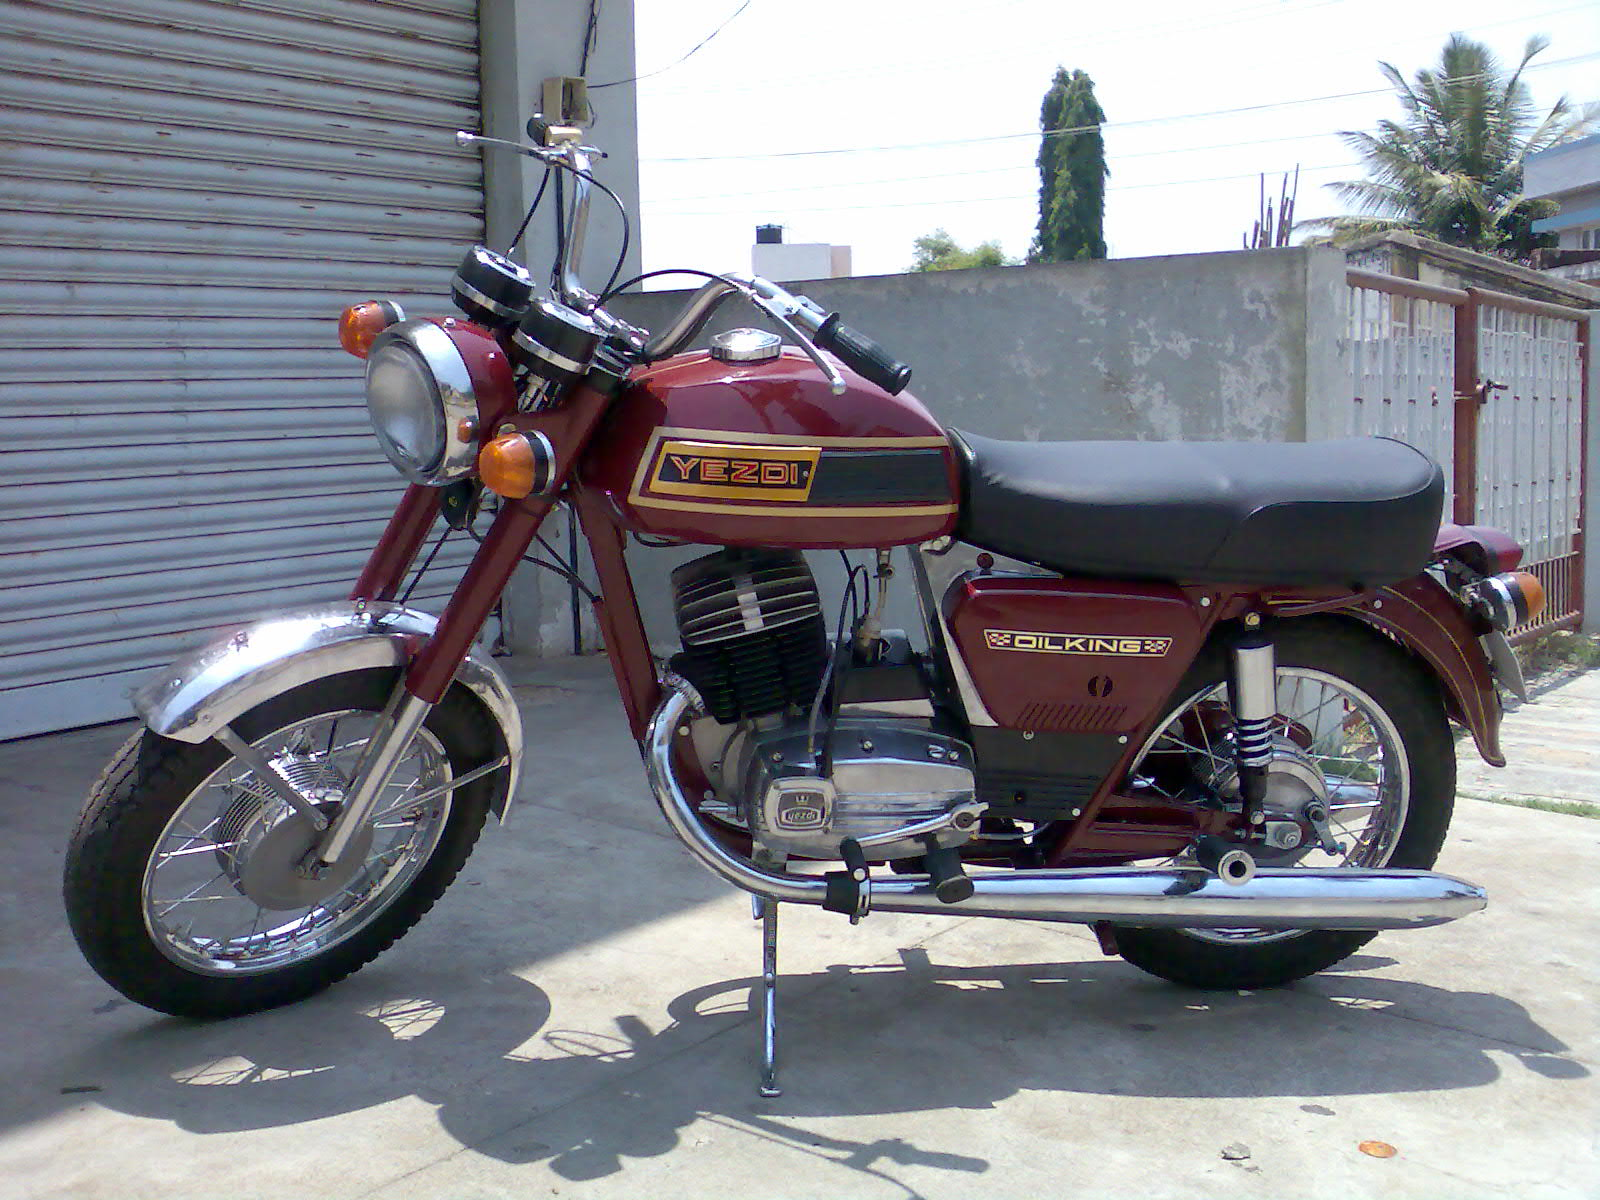 Jawa 350 Wiring Diagram Residential Electrical Symbols File Yezdi Oilking Wikimedia Commons Chevy 1986 C20 Engine Wire Diagrams